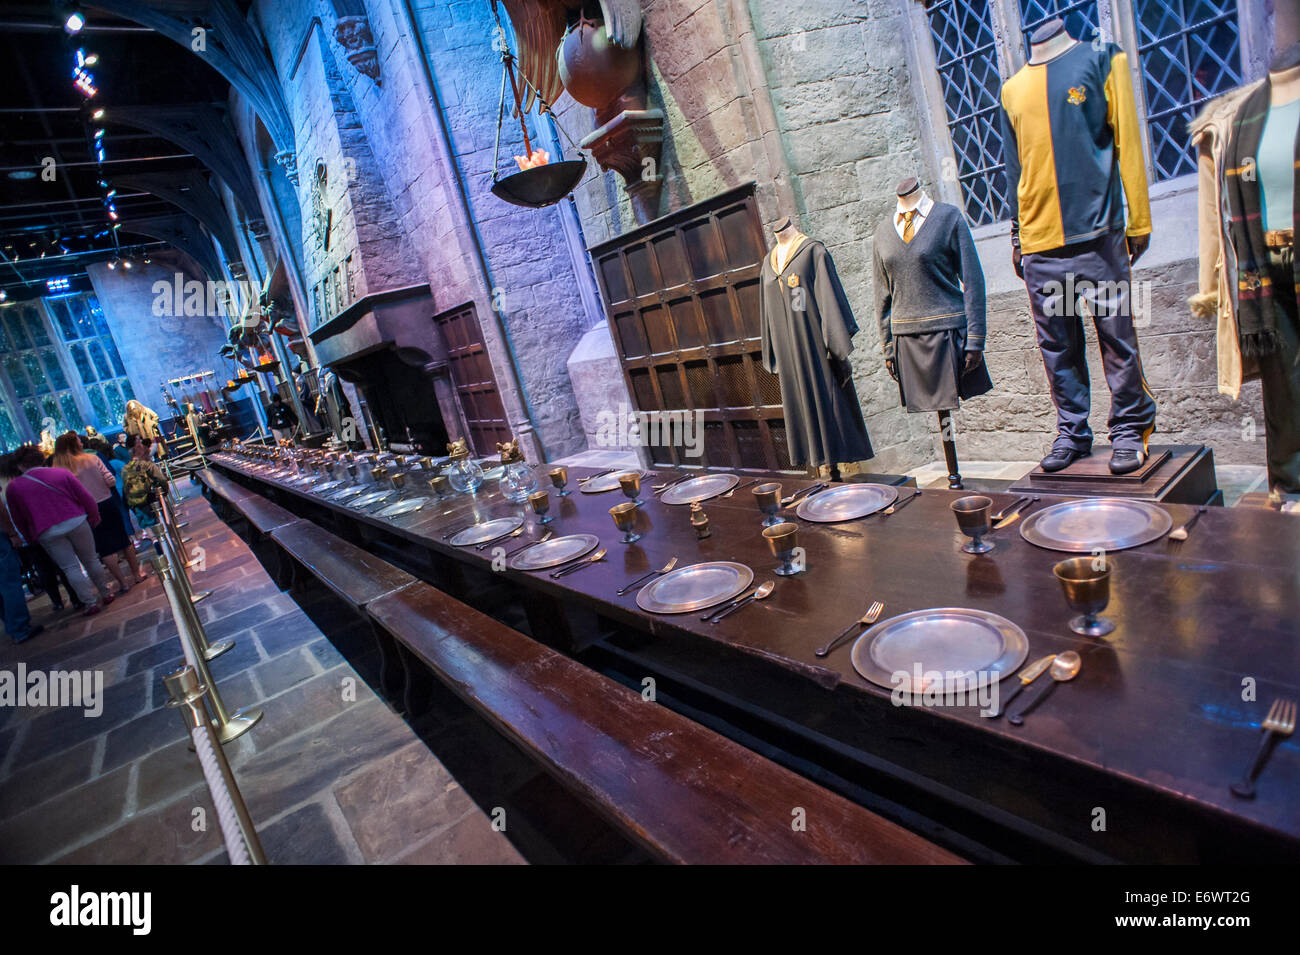 Warner Bros. Studio Tour London - The Making of Harry Potter preserves and showcases the iconic props. Stock Photo